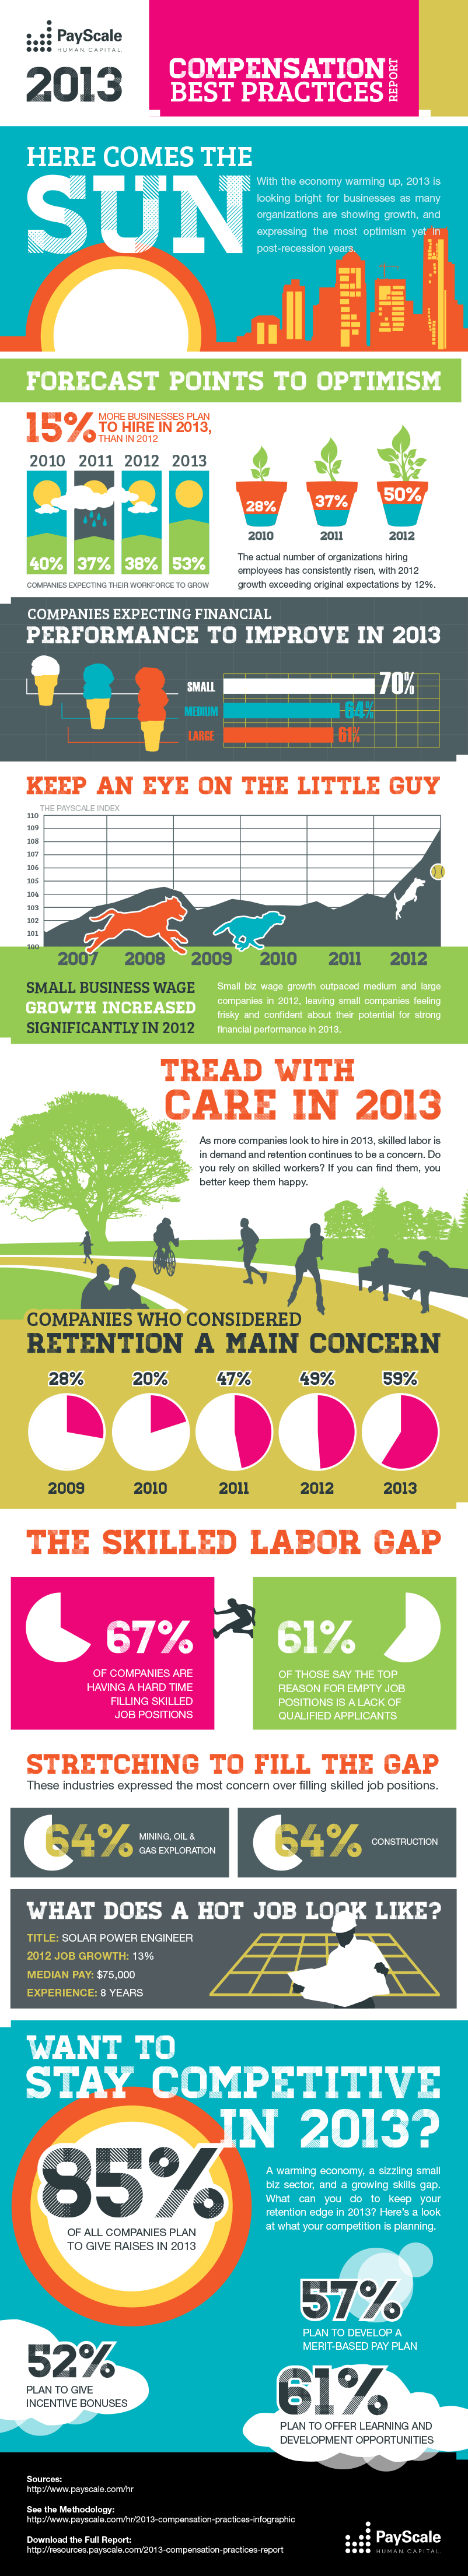 PayScale's 2013 Compensation Best Practices Infographic